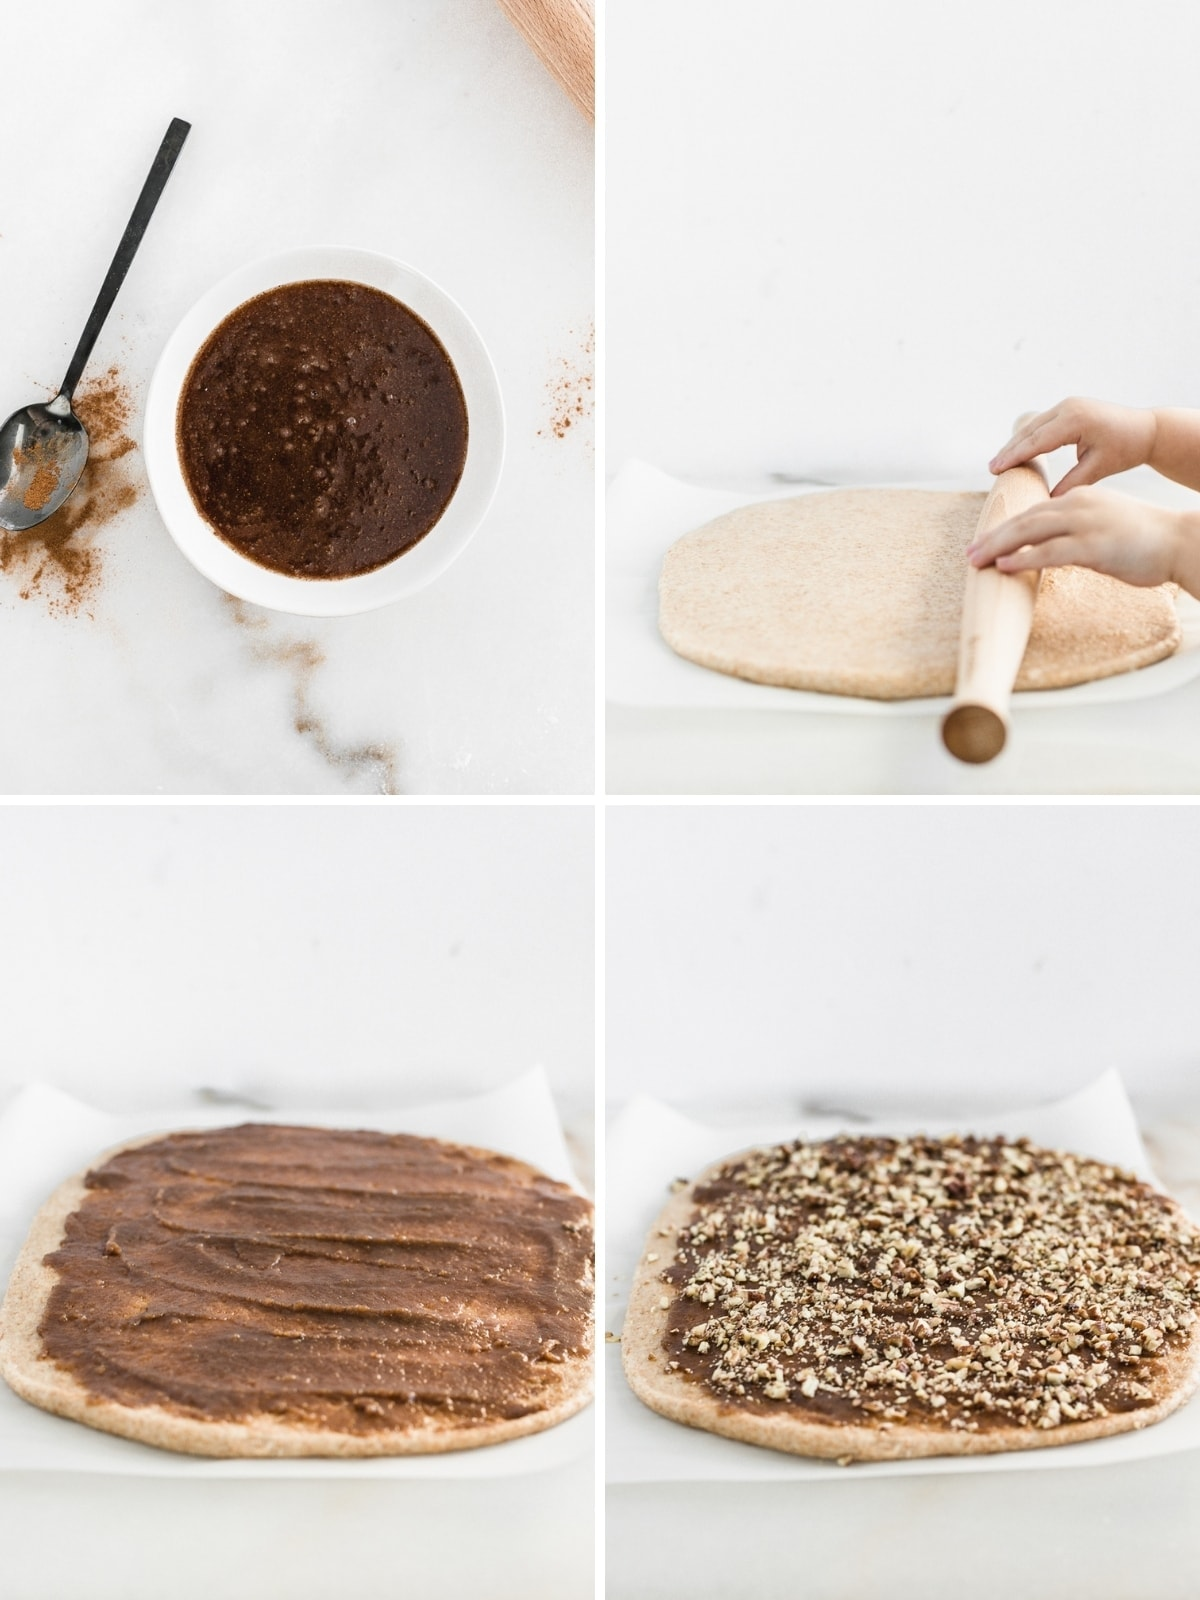 four image collage showing steps to filling cinnamon roll dough with pecan filing.